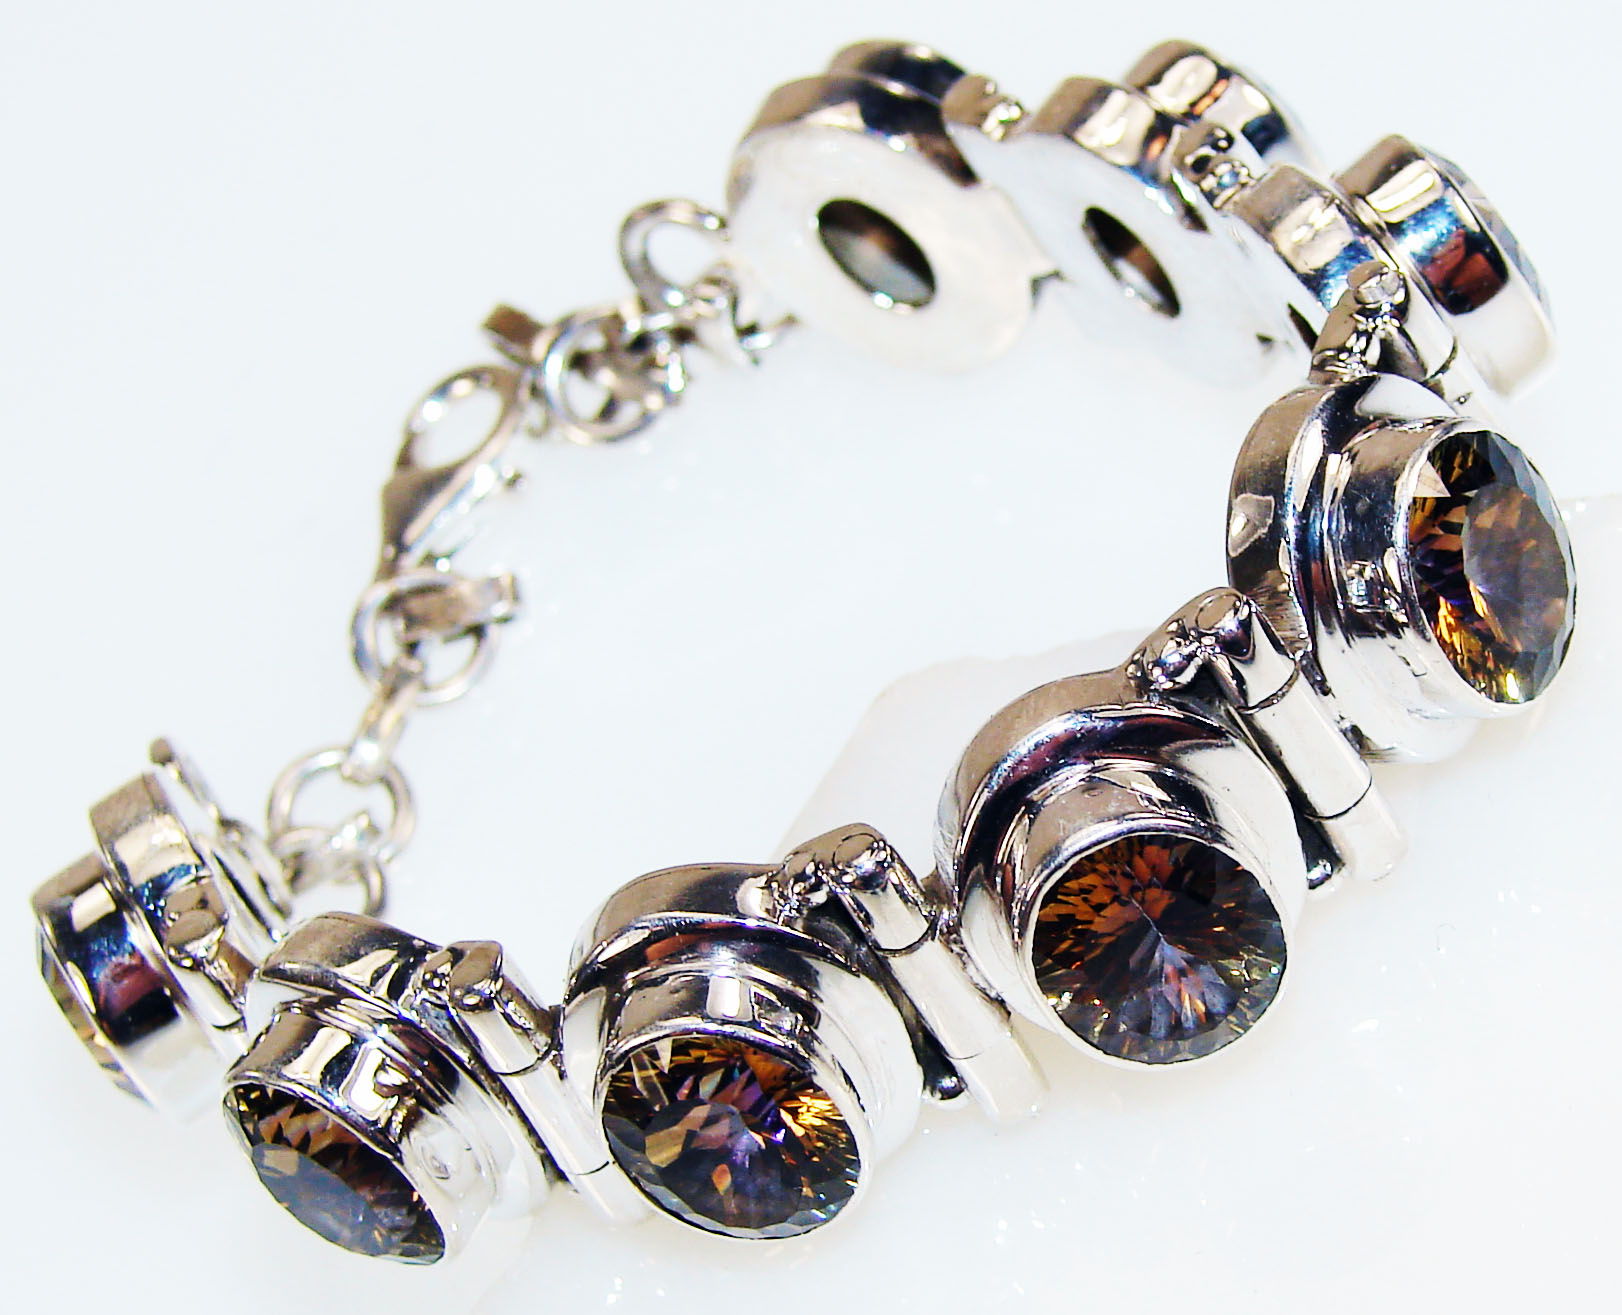 Silver Jewelry Gemstone Rare Exotic Colorful  Handmade  Golden Mistic Topaz Sterling Silver      Bracelet          Golden Mistic Topaz  Bracelet at Sears.com